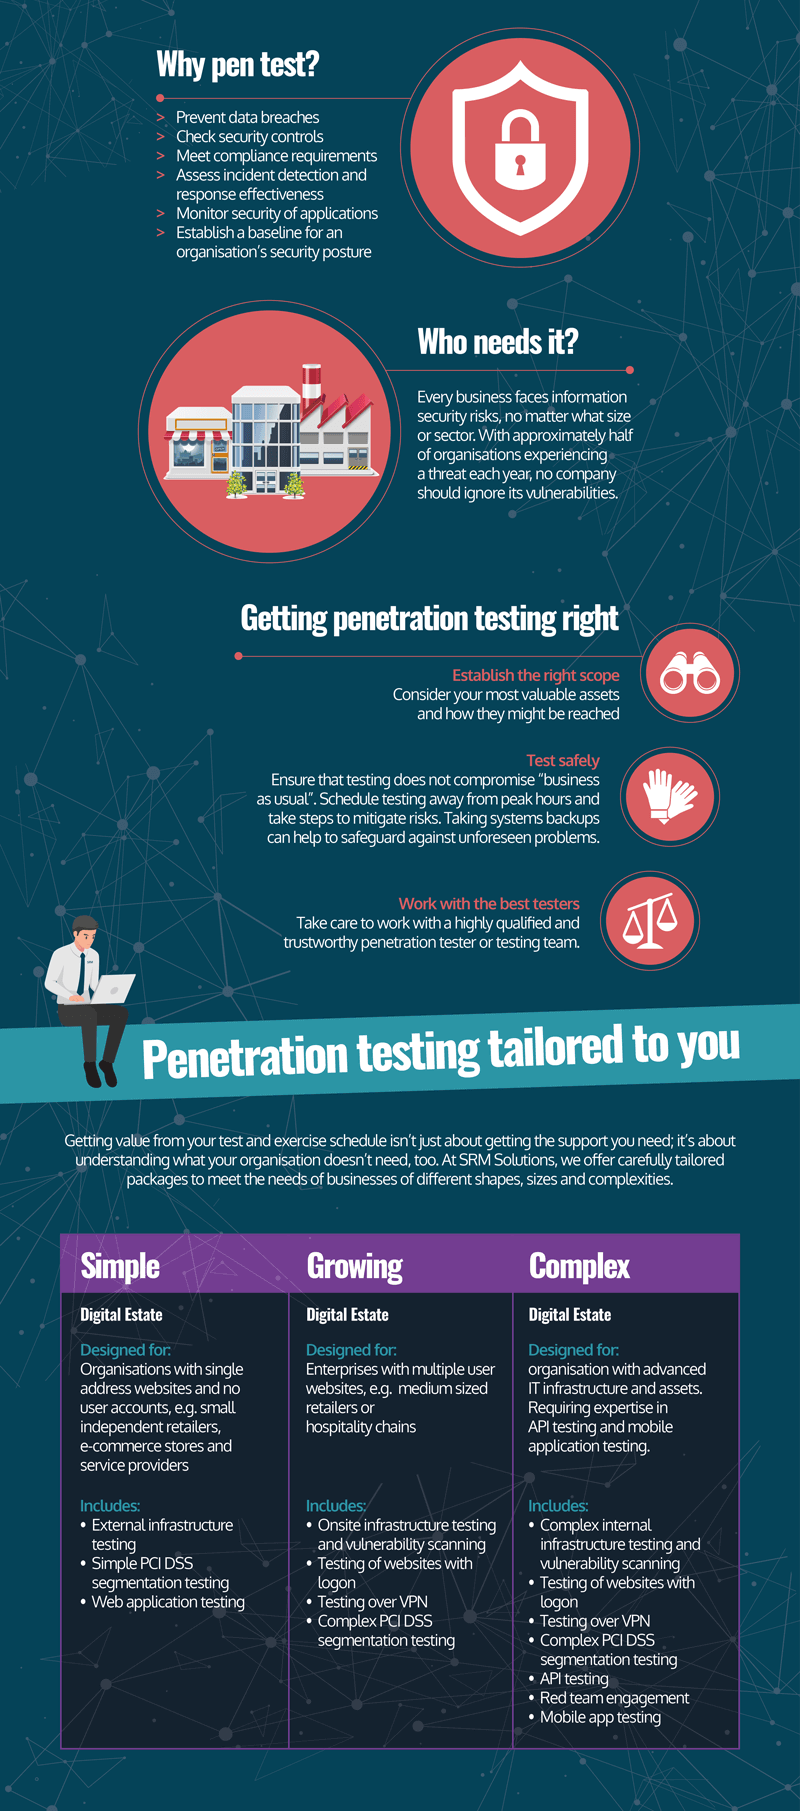 Why Penetration Testing